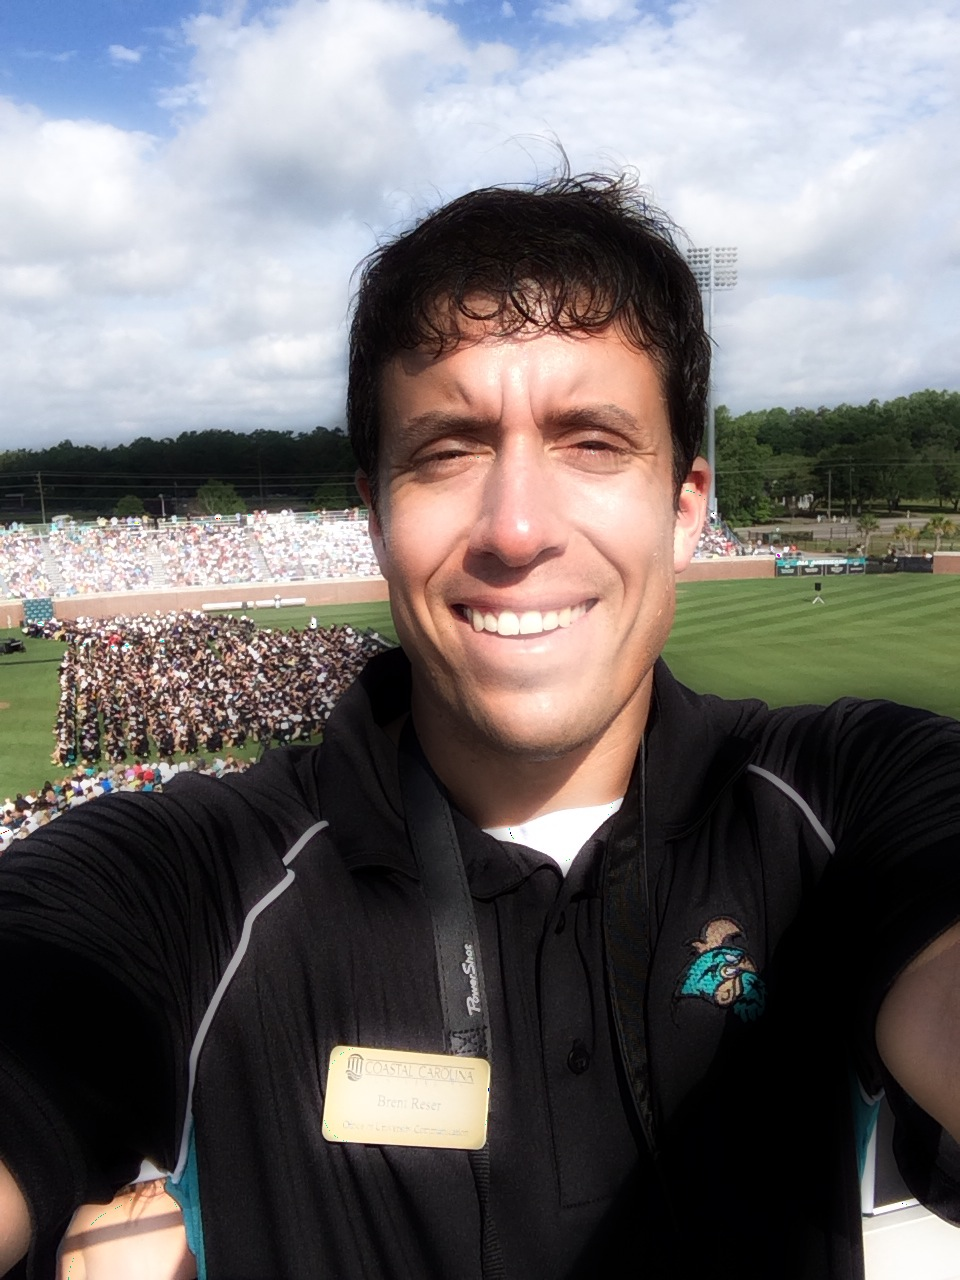 I had a nice time covering the Coastal Carolina graduation from inside Brooks Stadium.